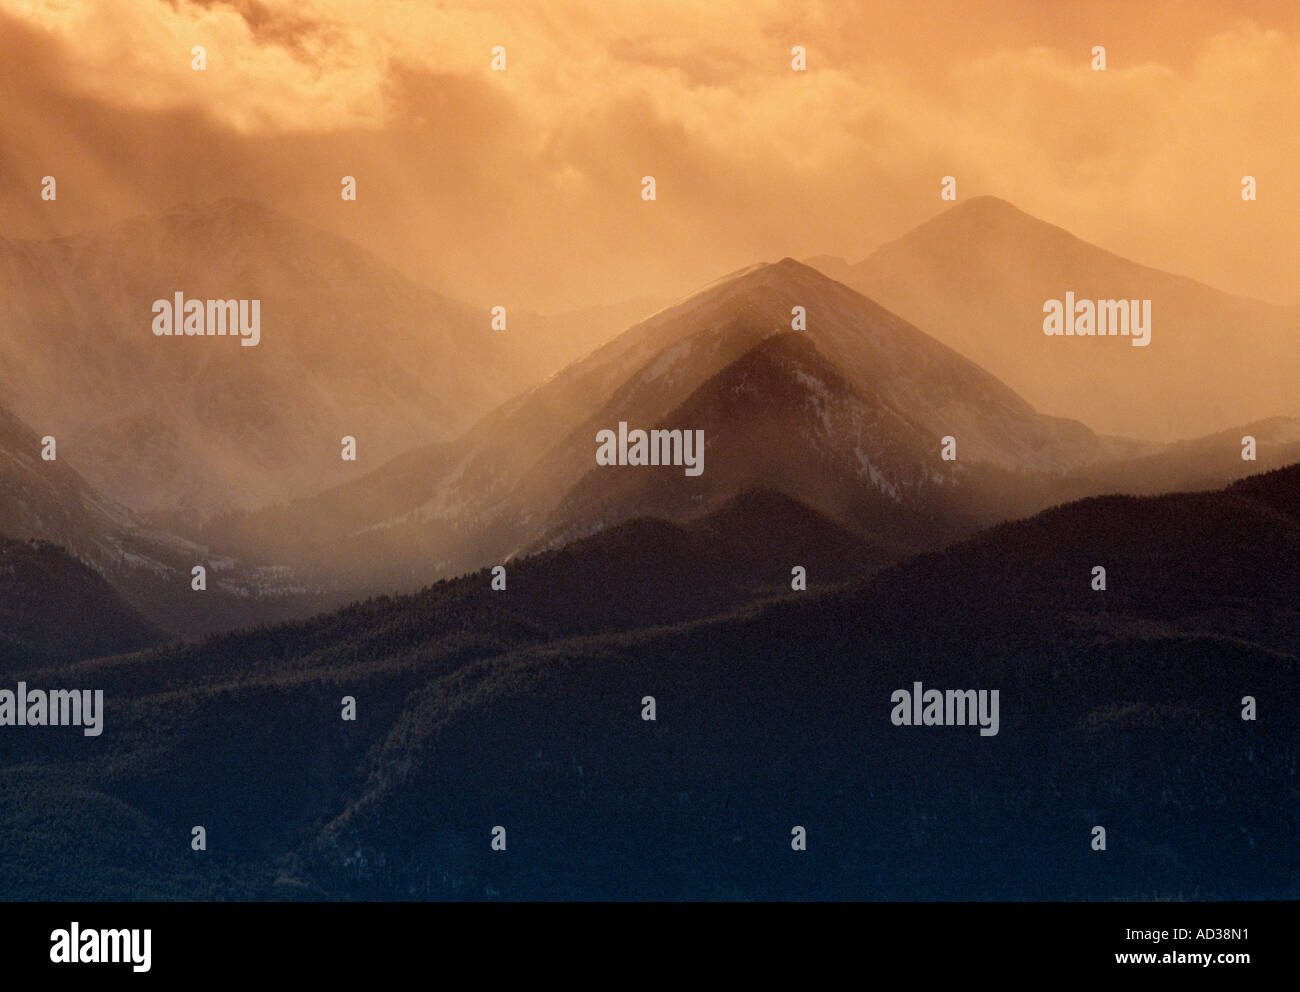 Mountain peaks with mist and clouds at sunset. - Stock Image